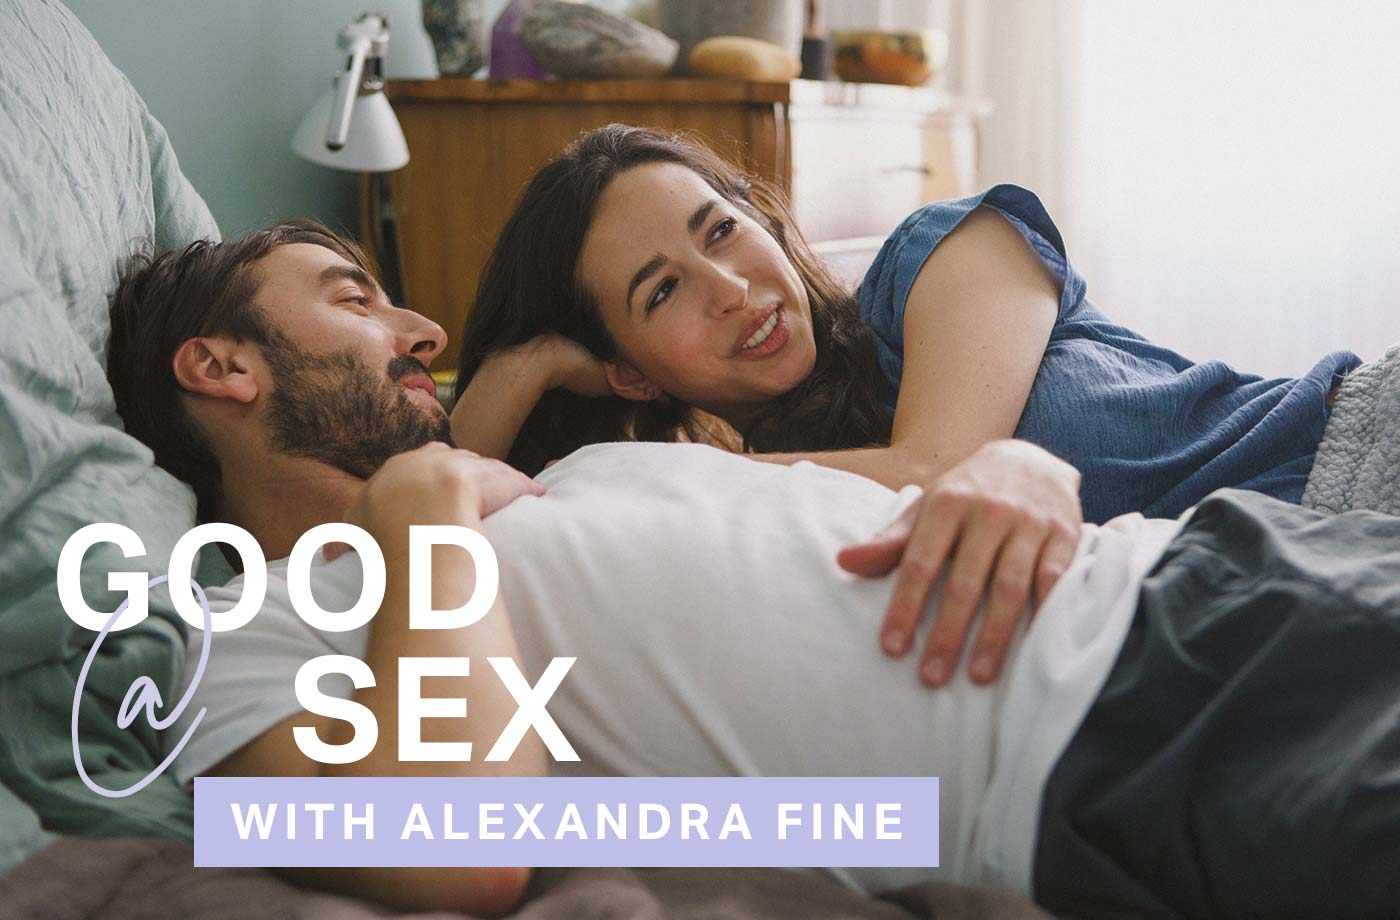 Is it a bad sign if I prefer to masturbate over having sex with my partner?